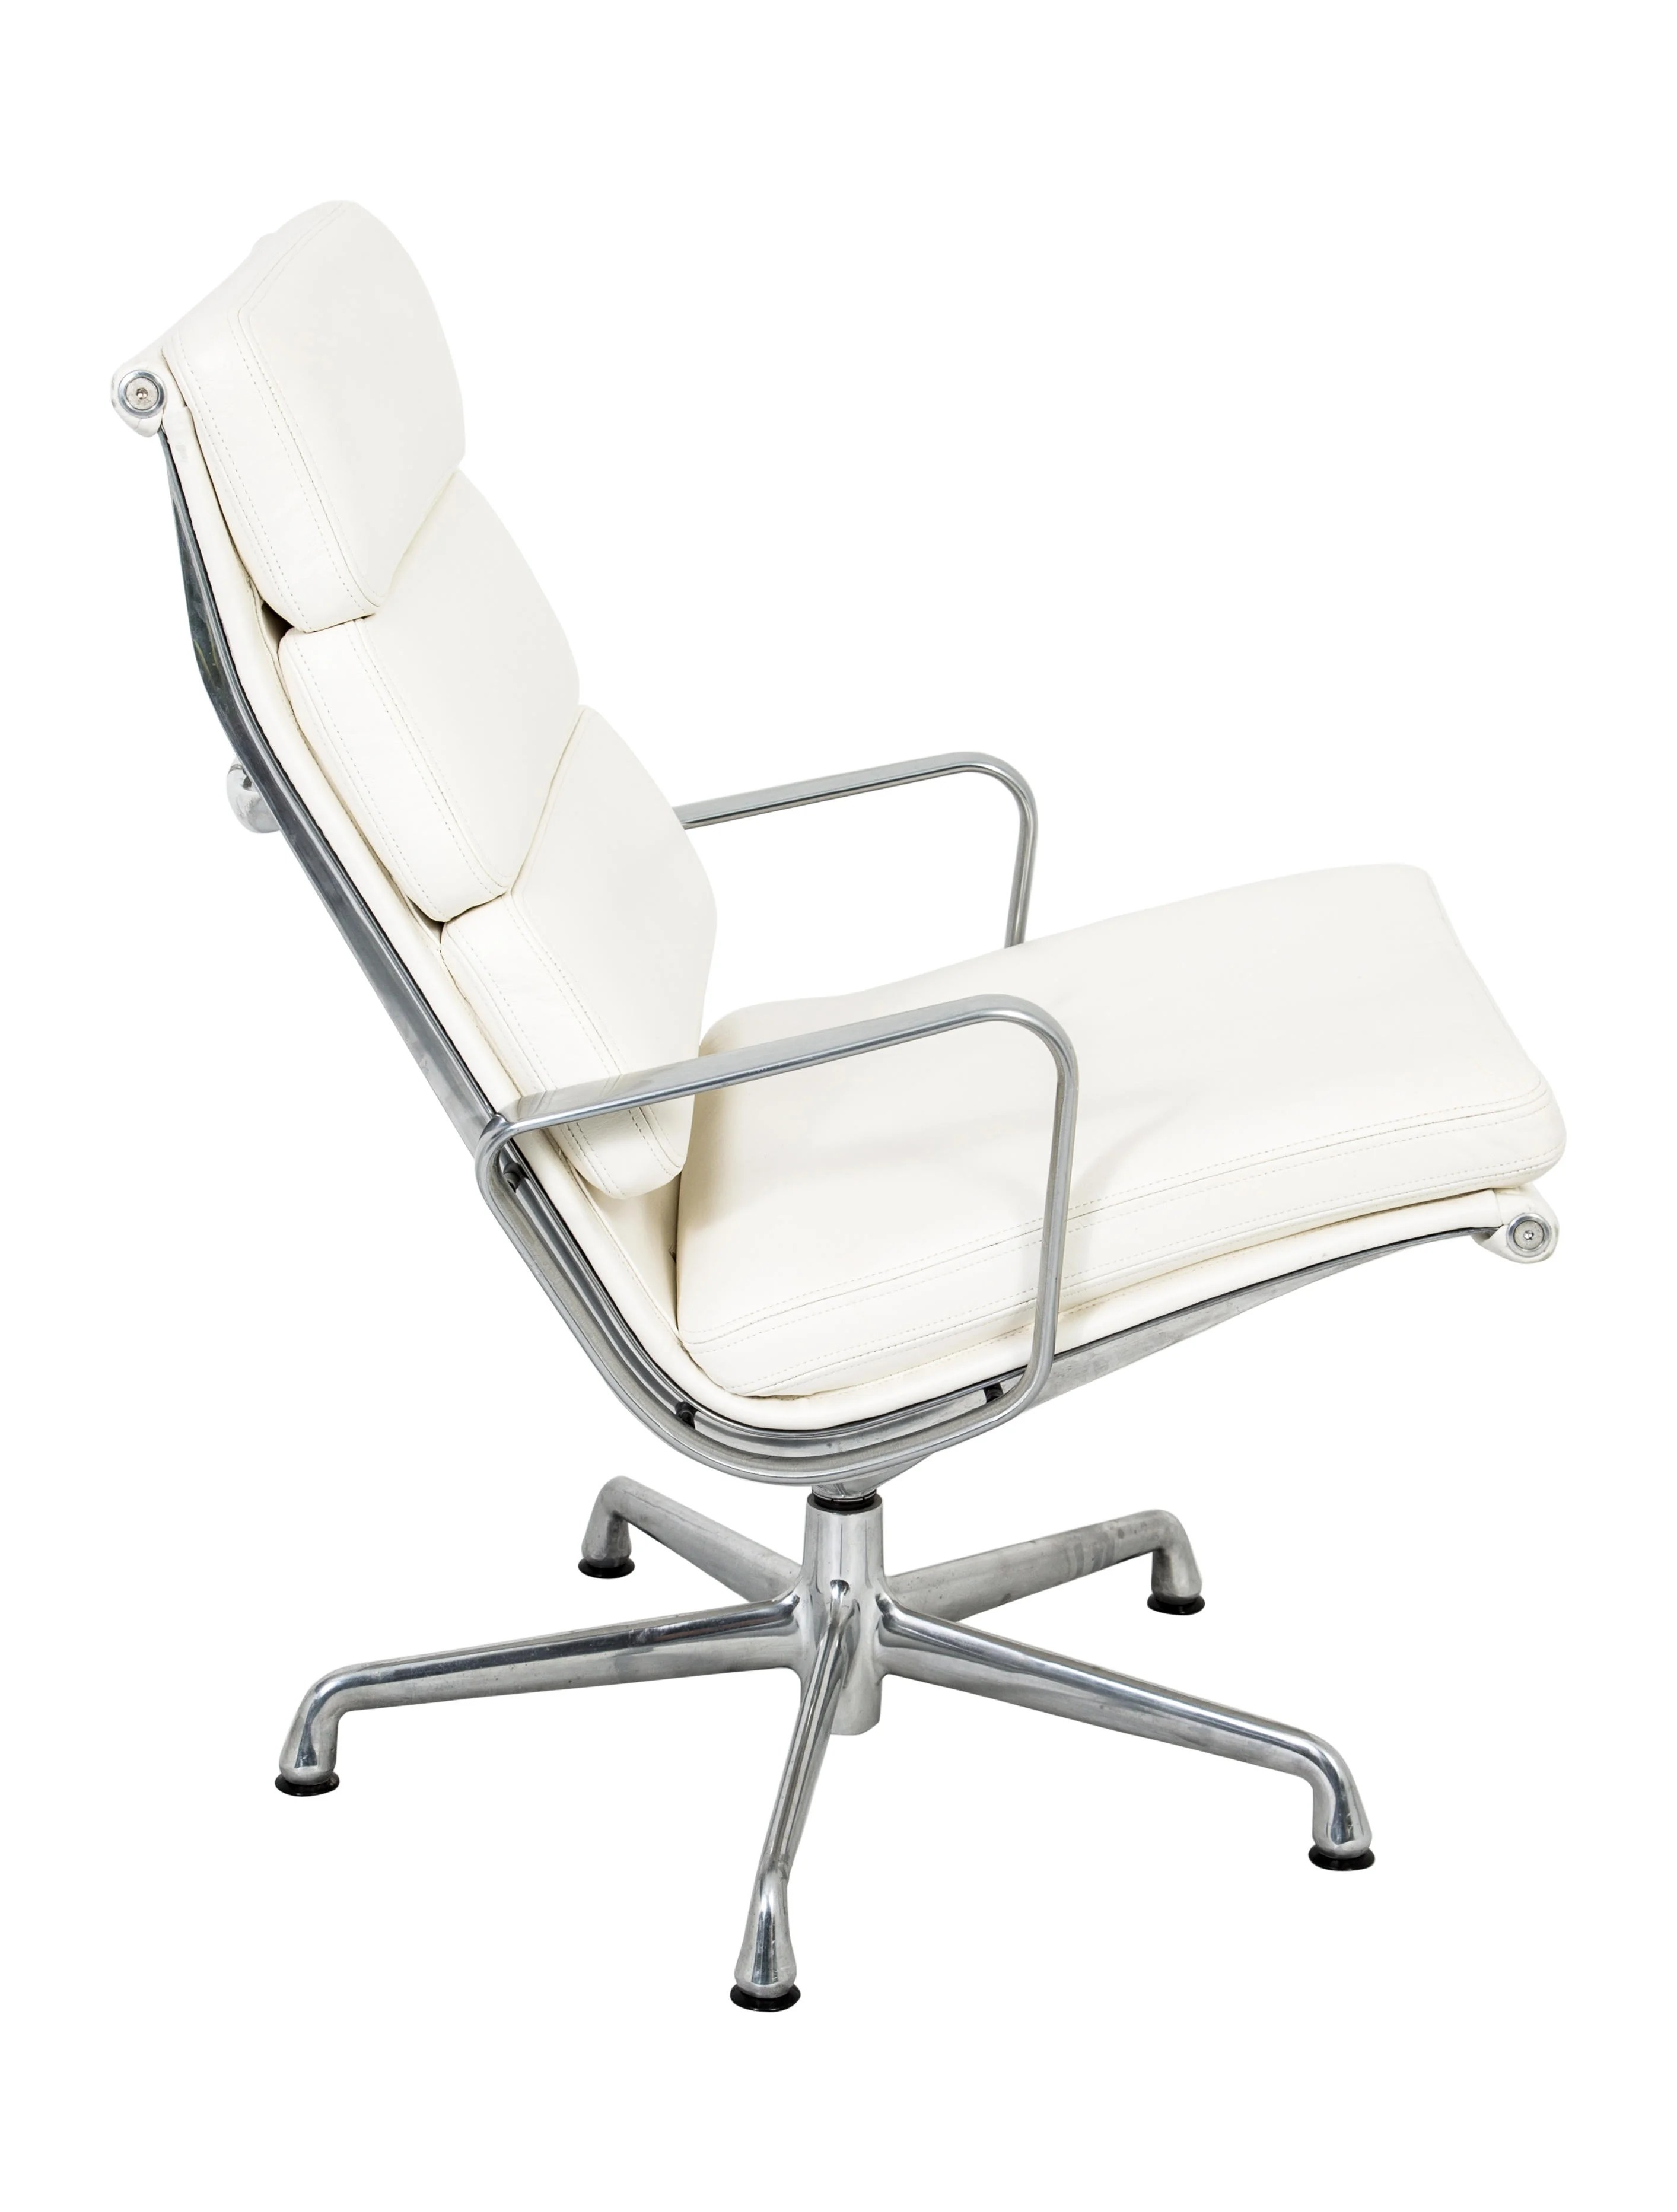 Eames Desk Chair Herman Miller Eames Executive Desk Chair Furniture